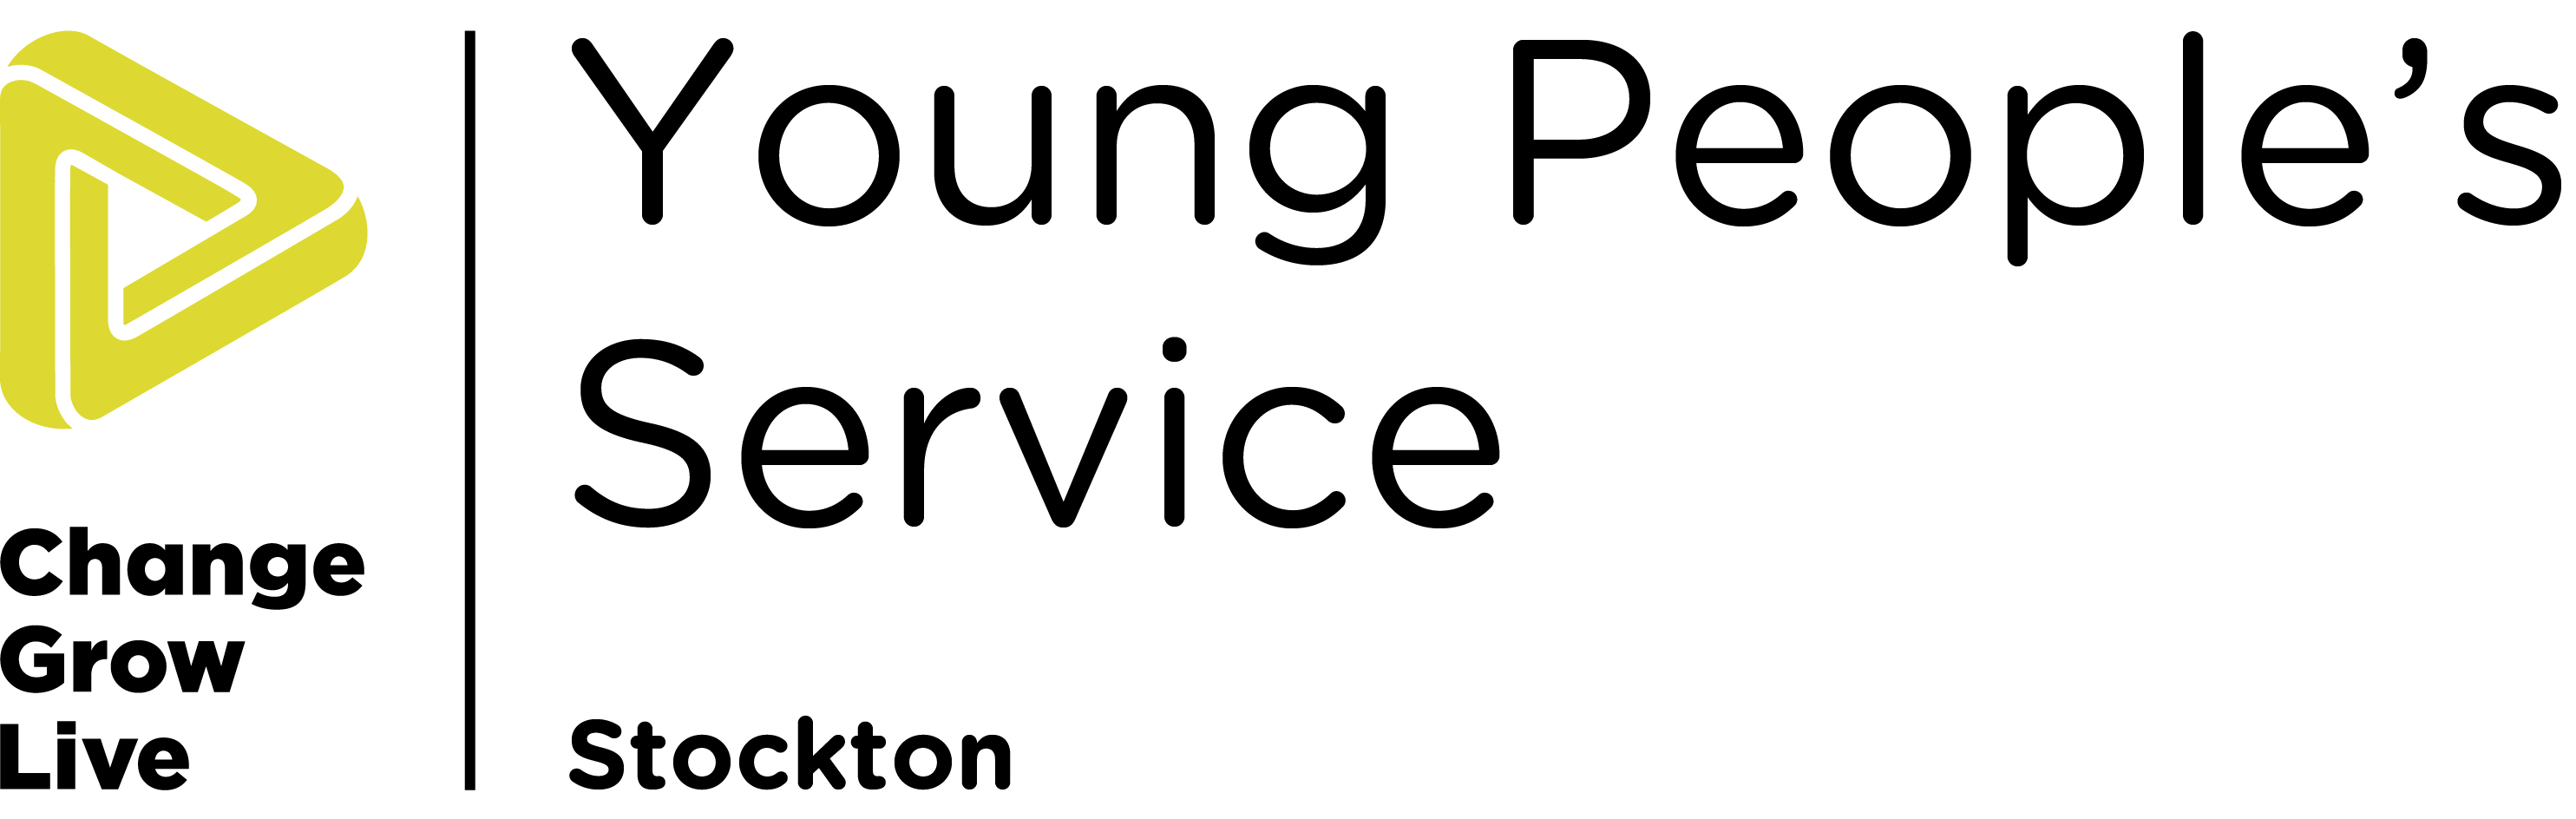 the Stockton young people's logo in colour